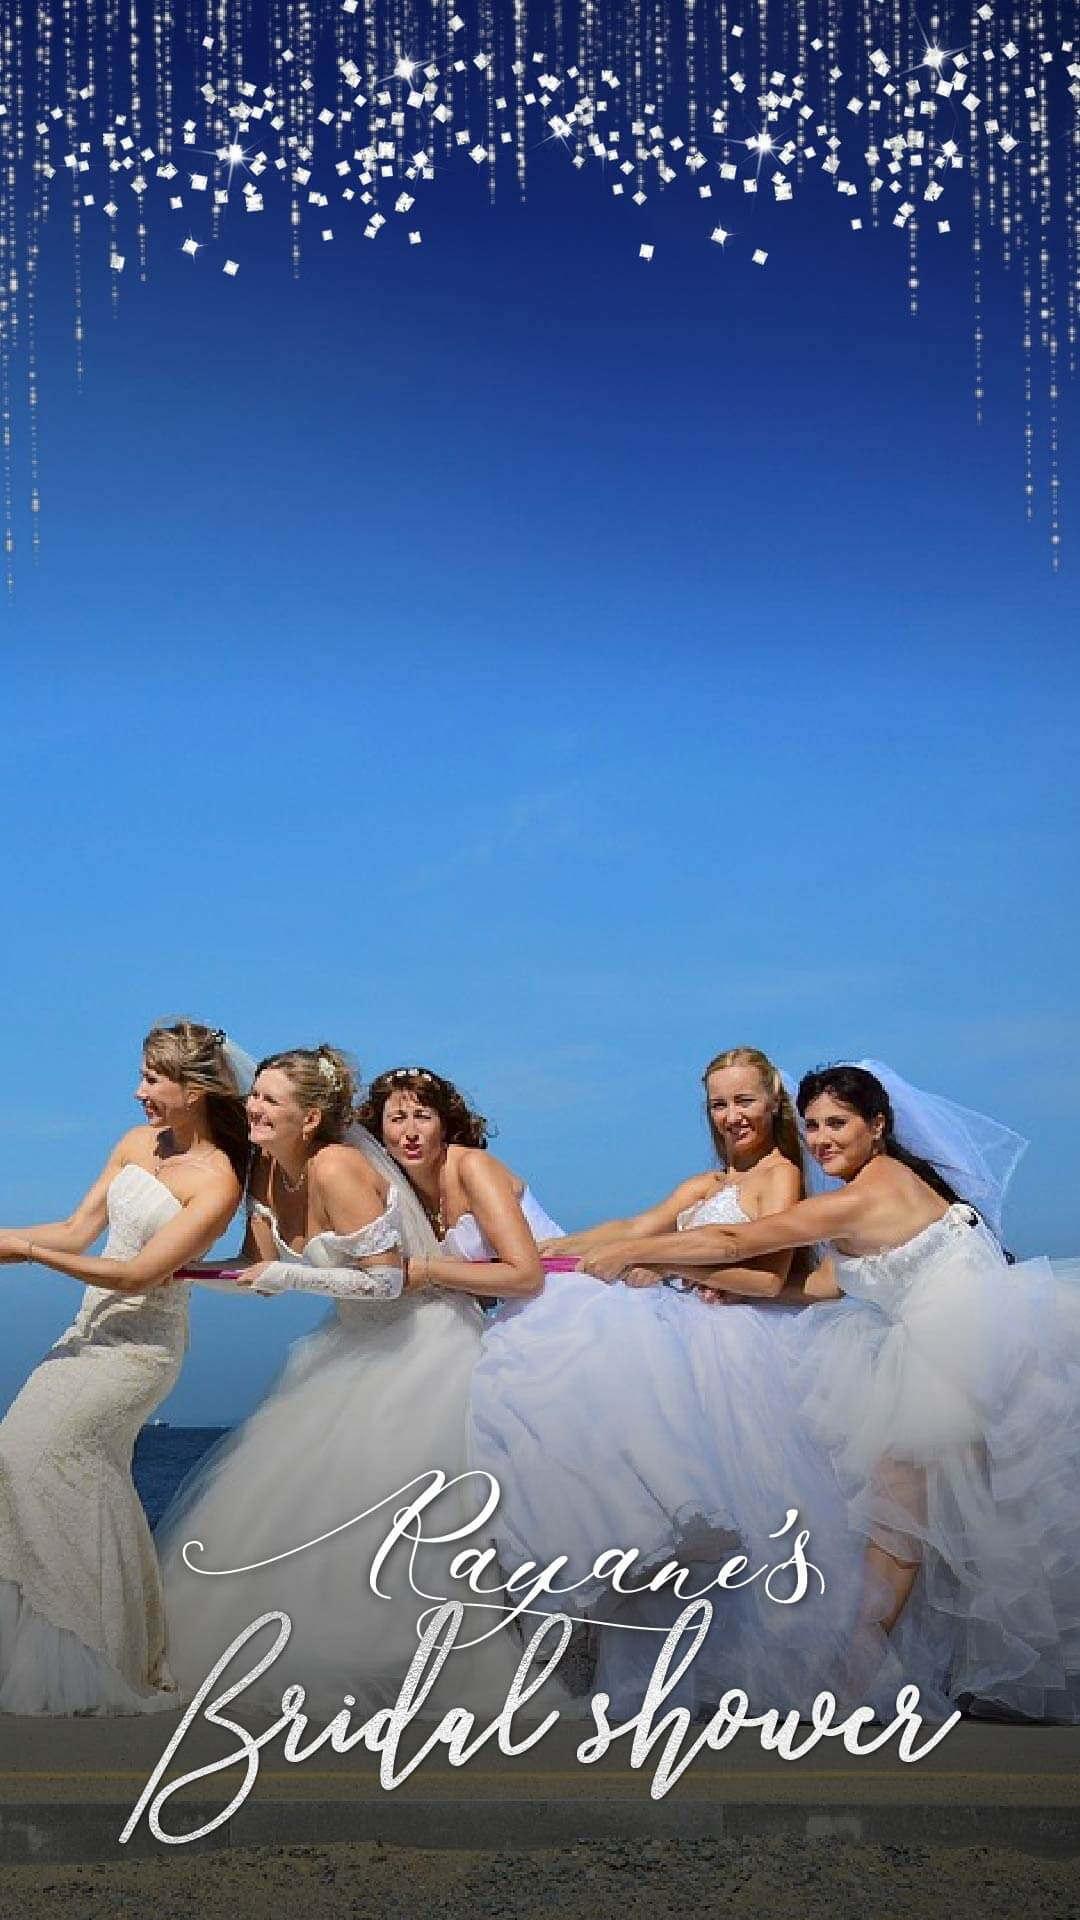 Bridal Shower Snapchat Geofilters